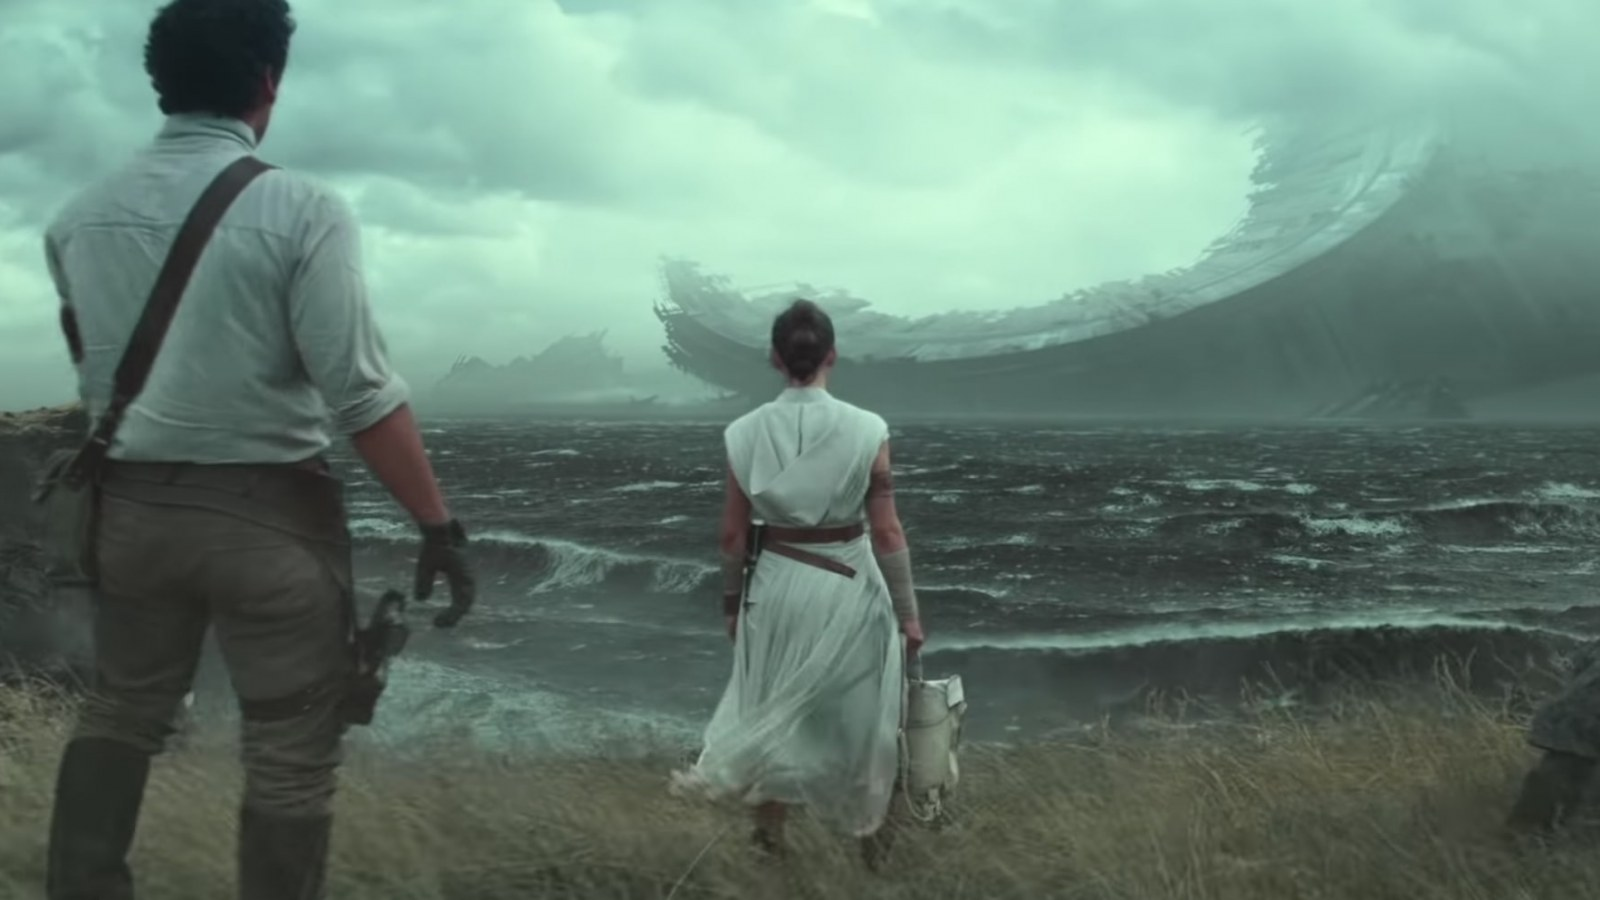 Star Wars The Rise Of Skywalker Leaks Suggest Death Stars Are Back